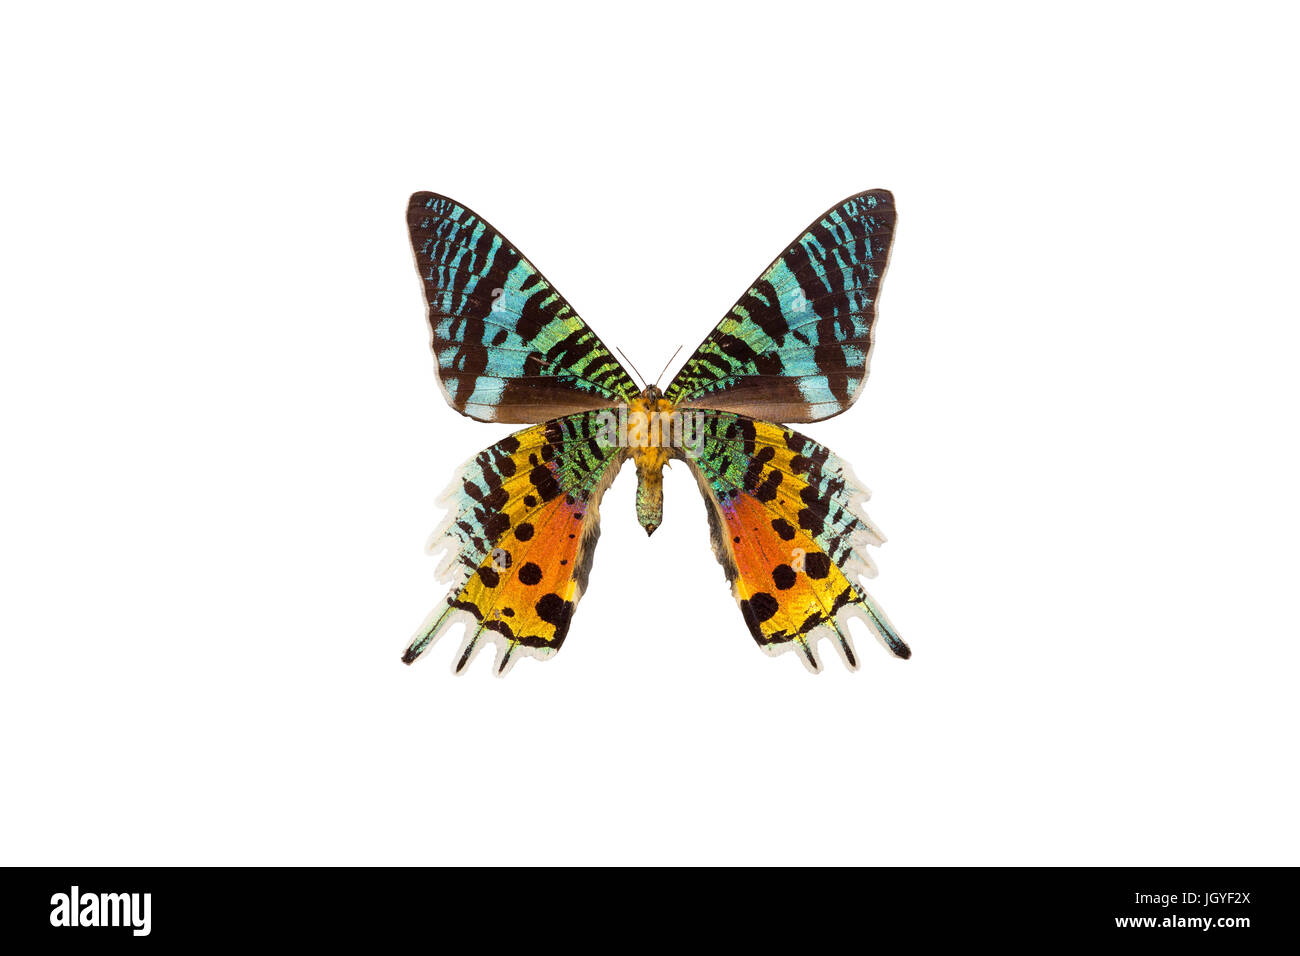 One of the most colorful lepidopterans in the world - madagascan sunset moth (Urania ripheus). - Stock Image